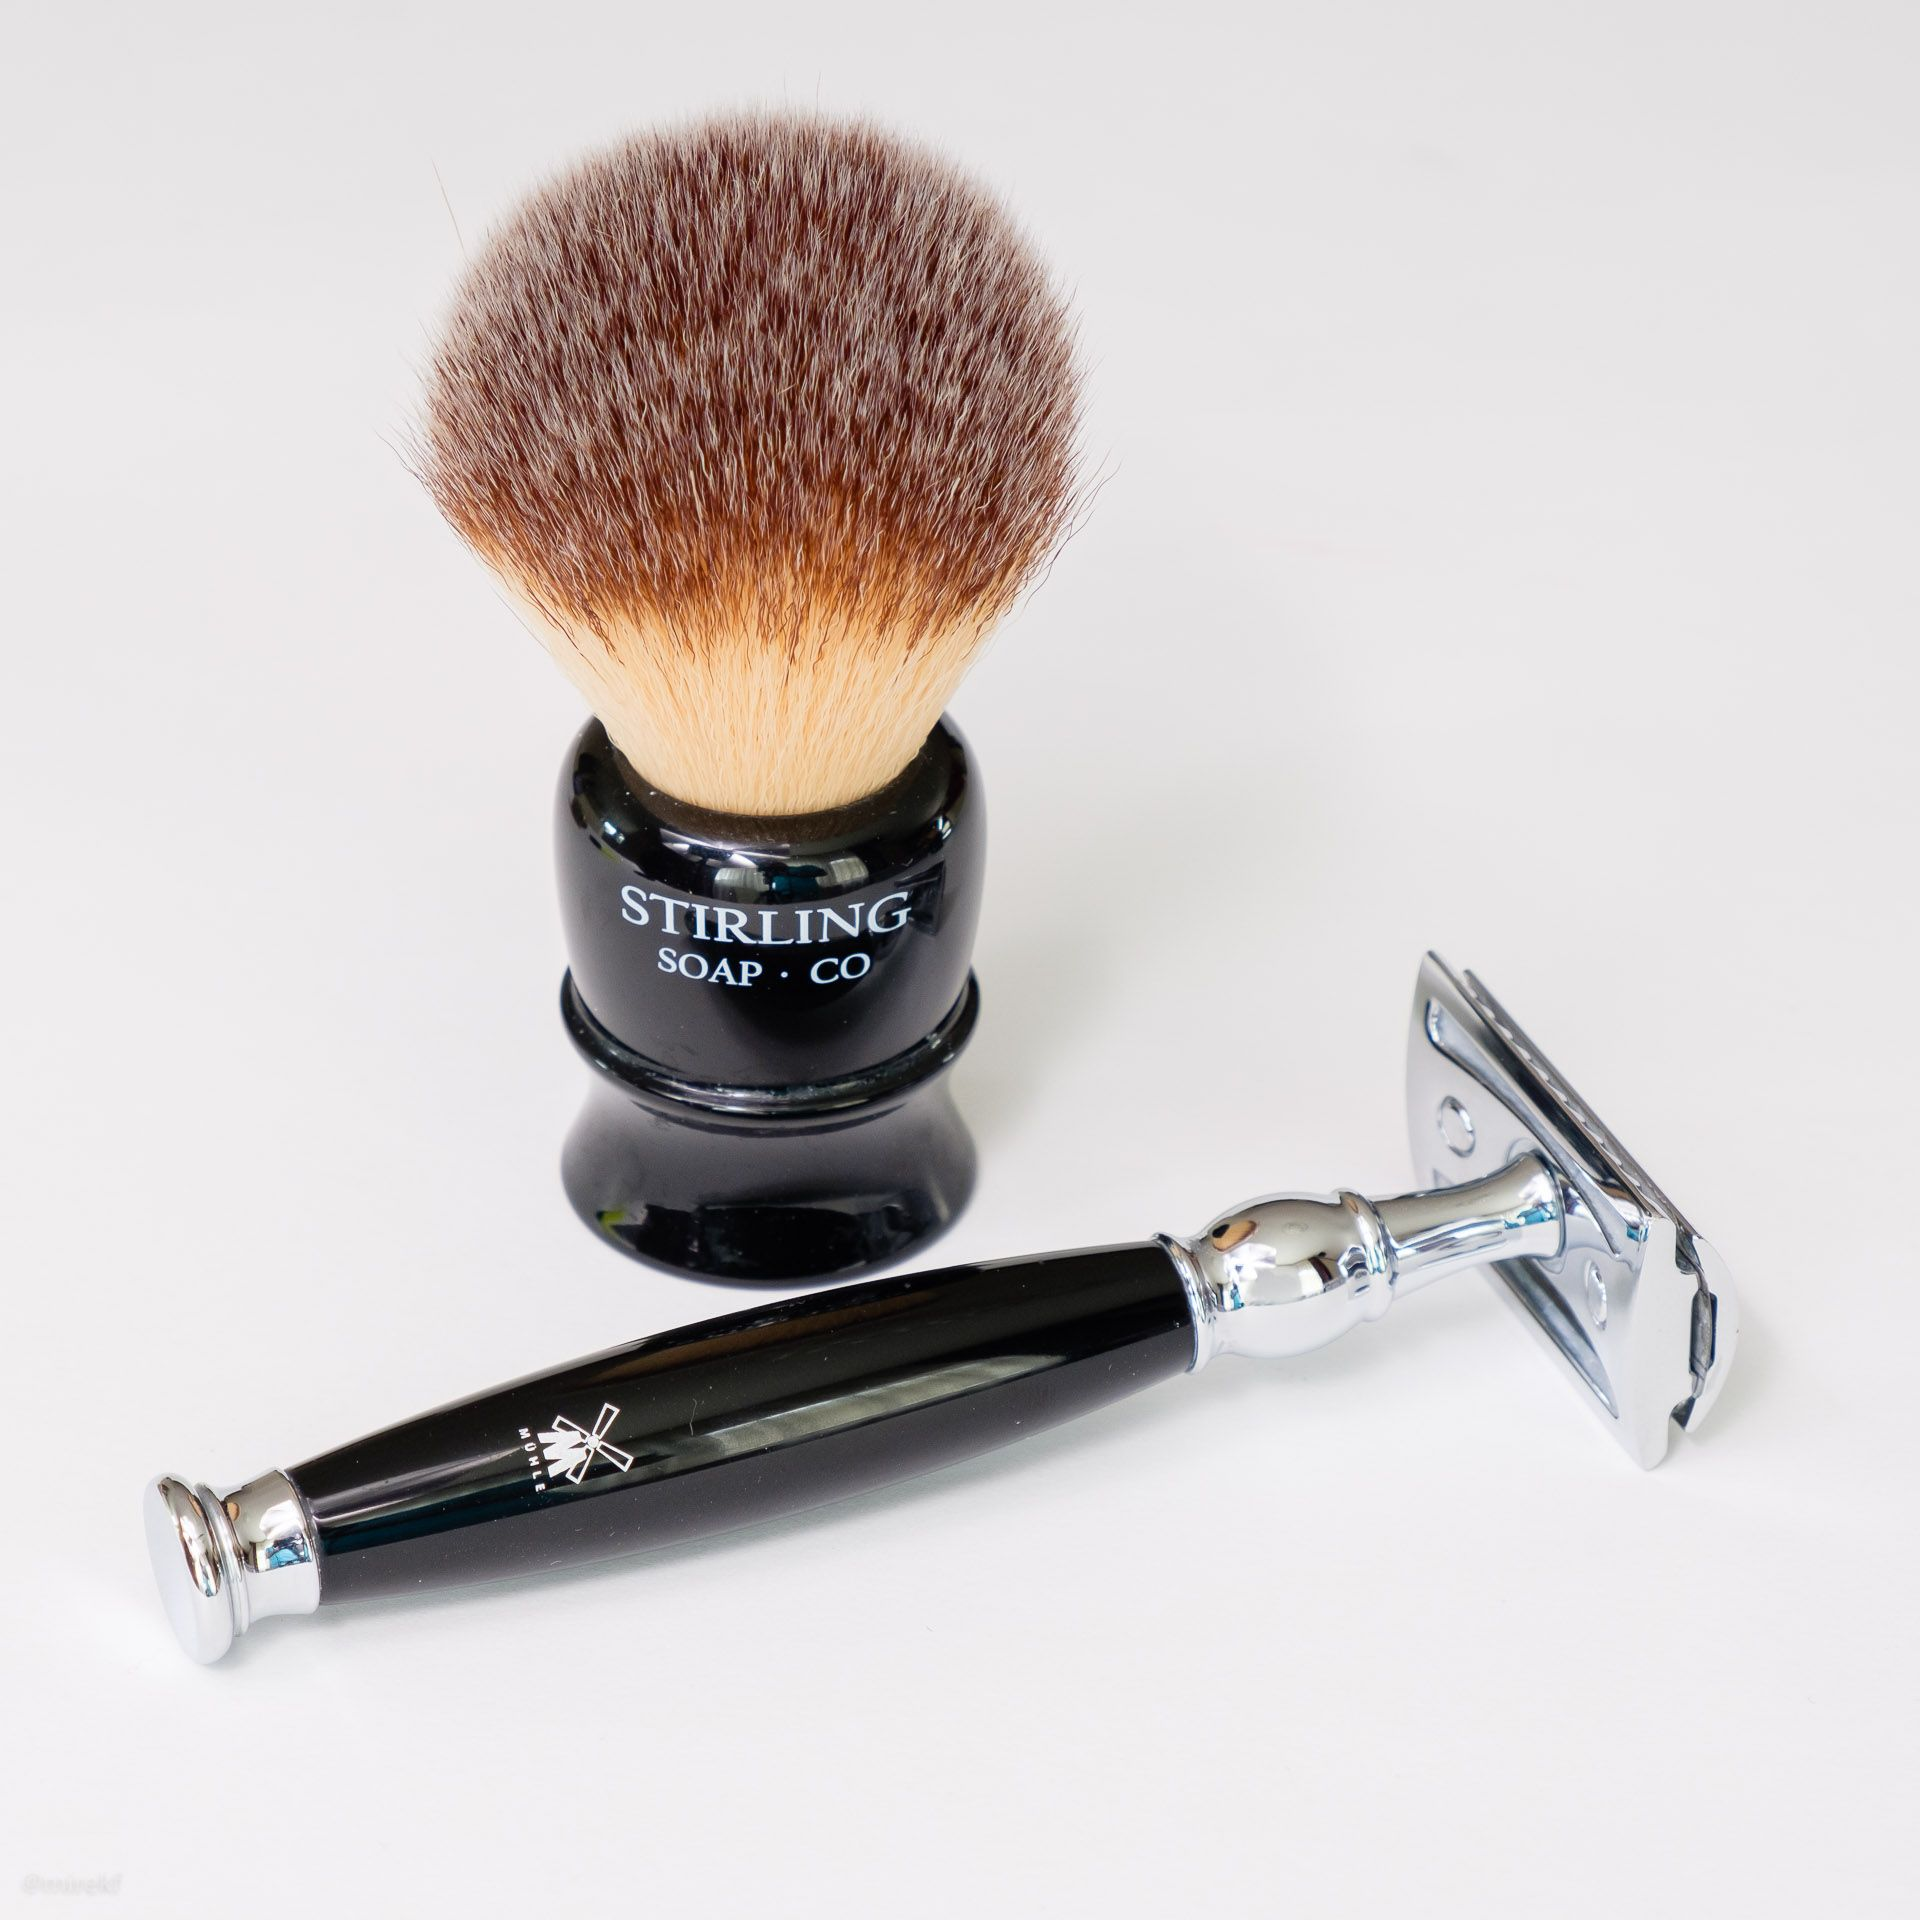 Stirling-Brush-22mm-z-muehle-sophist-razor